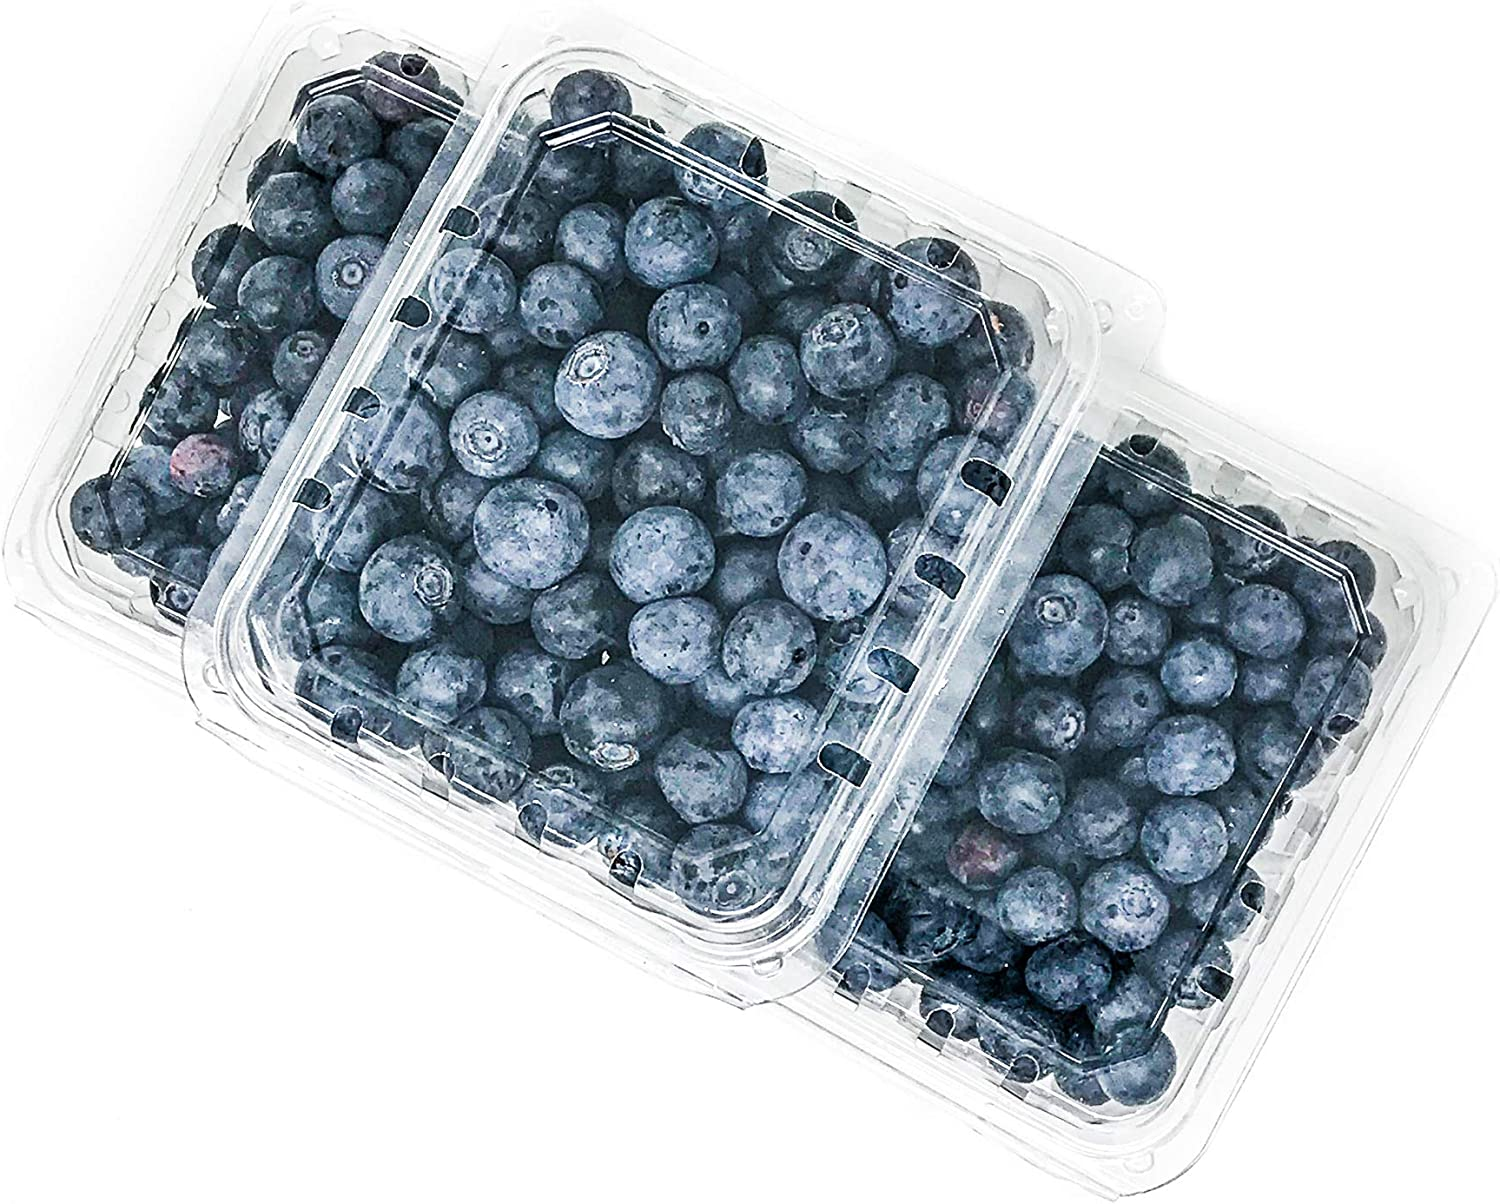 One Pint Clear Plastic Berry Clamshell Container Vented (30 Count) for Strawberry Blueberries Tomatoes and Produce